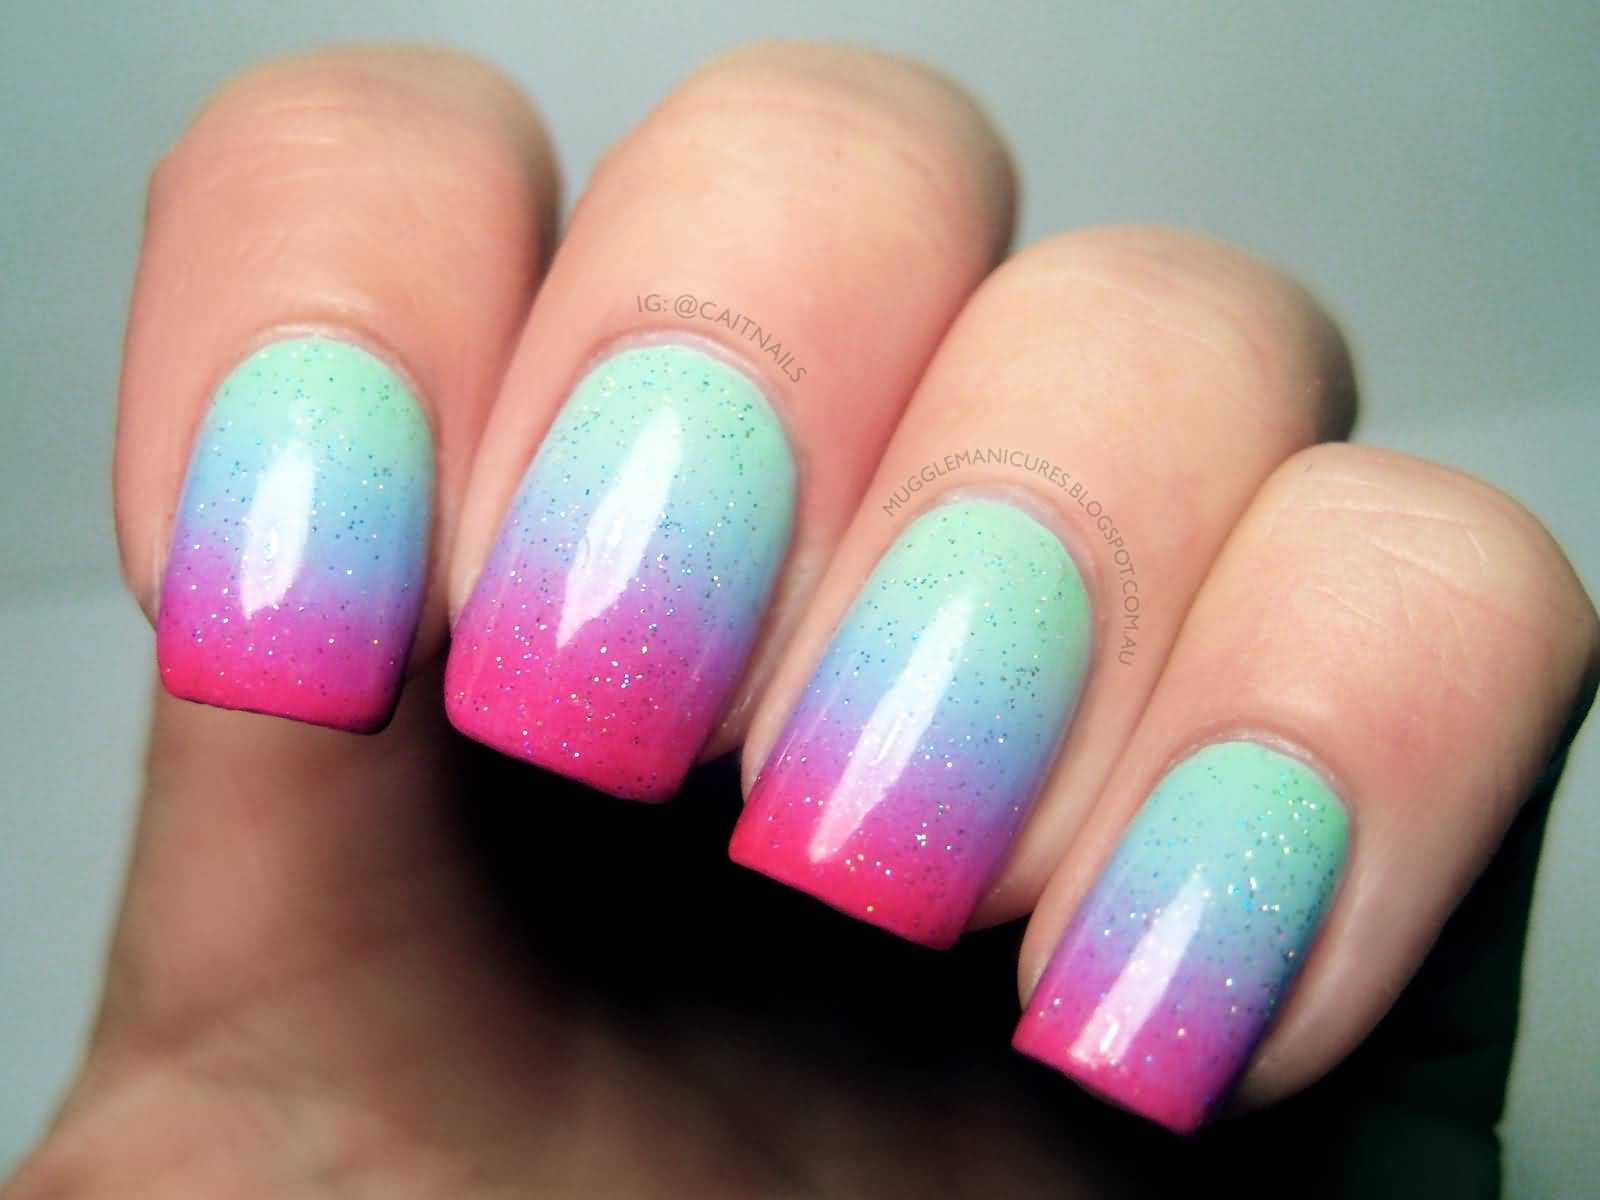 Generous Ysl Nail Polish Review Tiny Opi Glitter Nail Polish Names Clean Organic Nail Polish Ingredients Permeable Nail Polish Old Nails Art Stamping DarkSimple Nail Art Ideas For Beginners Gradient\u0026#39; Nail Art Is About To Become Your New Obsession ..